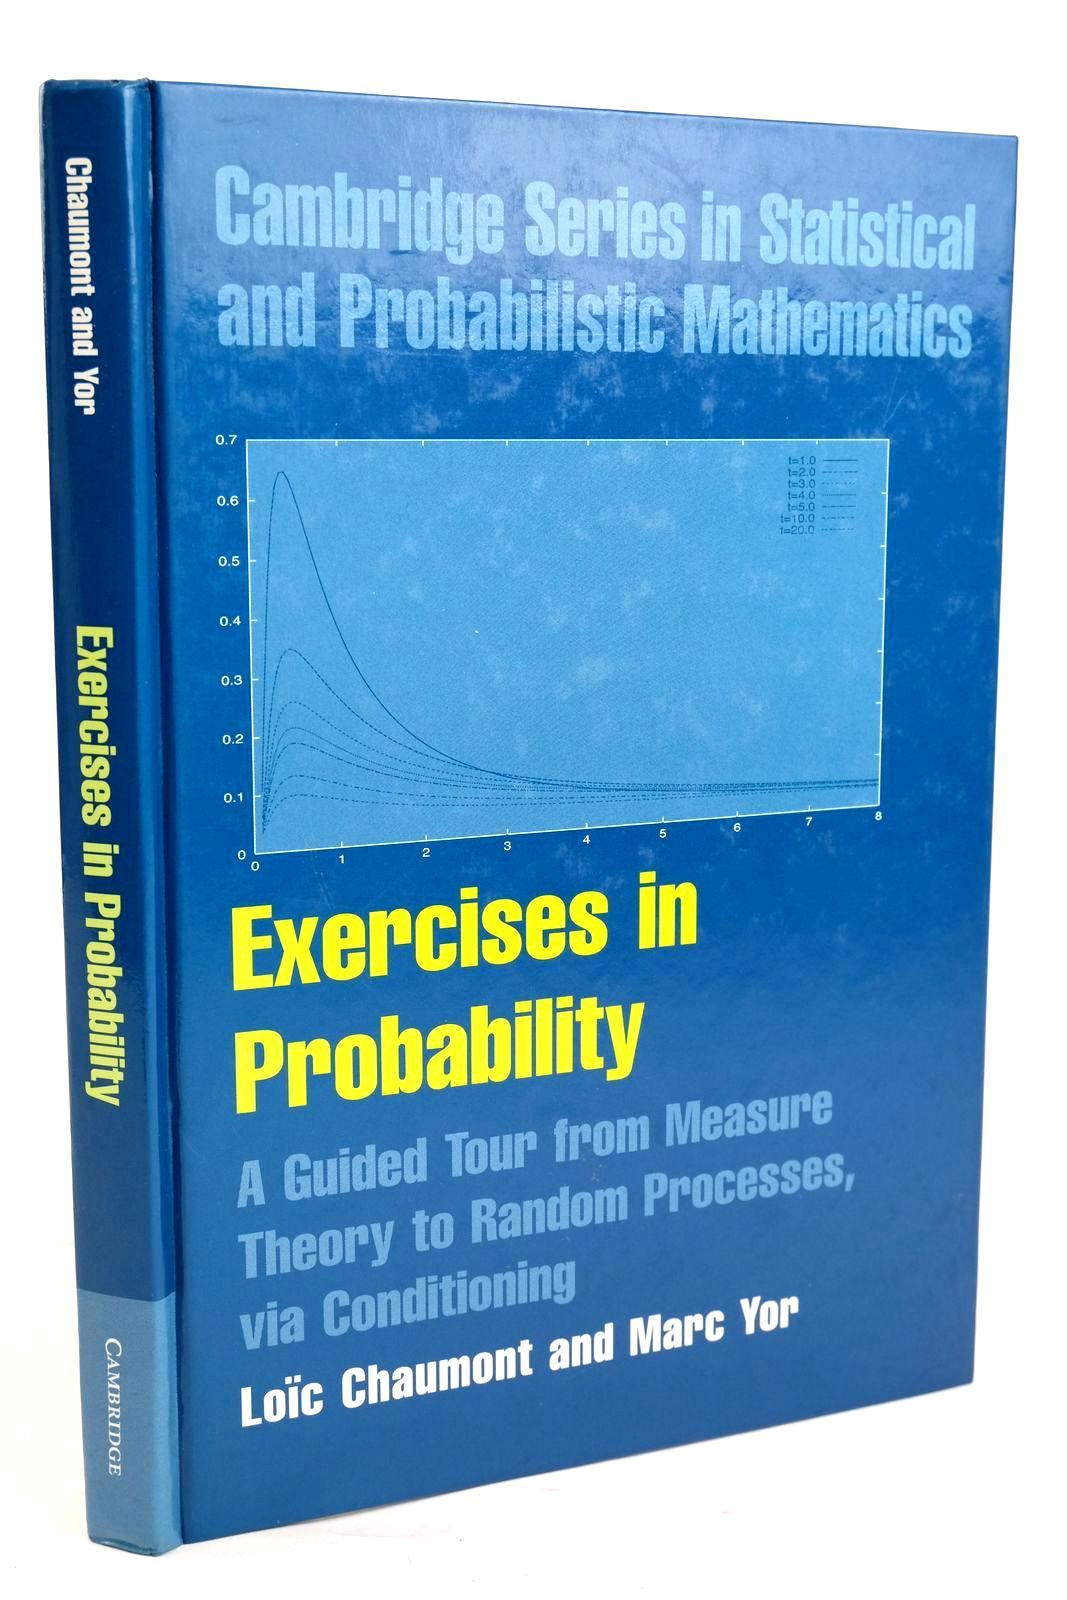 Photo of EXERCISES IN PROBABILITY written by Chaumont, L. Yor, M. published by Cambridge University Press (STOCK CODE: 1319628)  for sale by Stella & Rose's Books